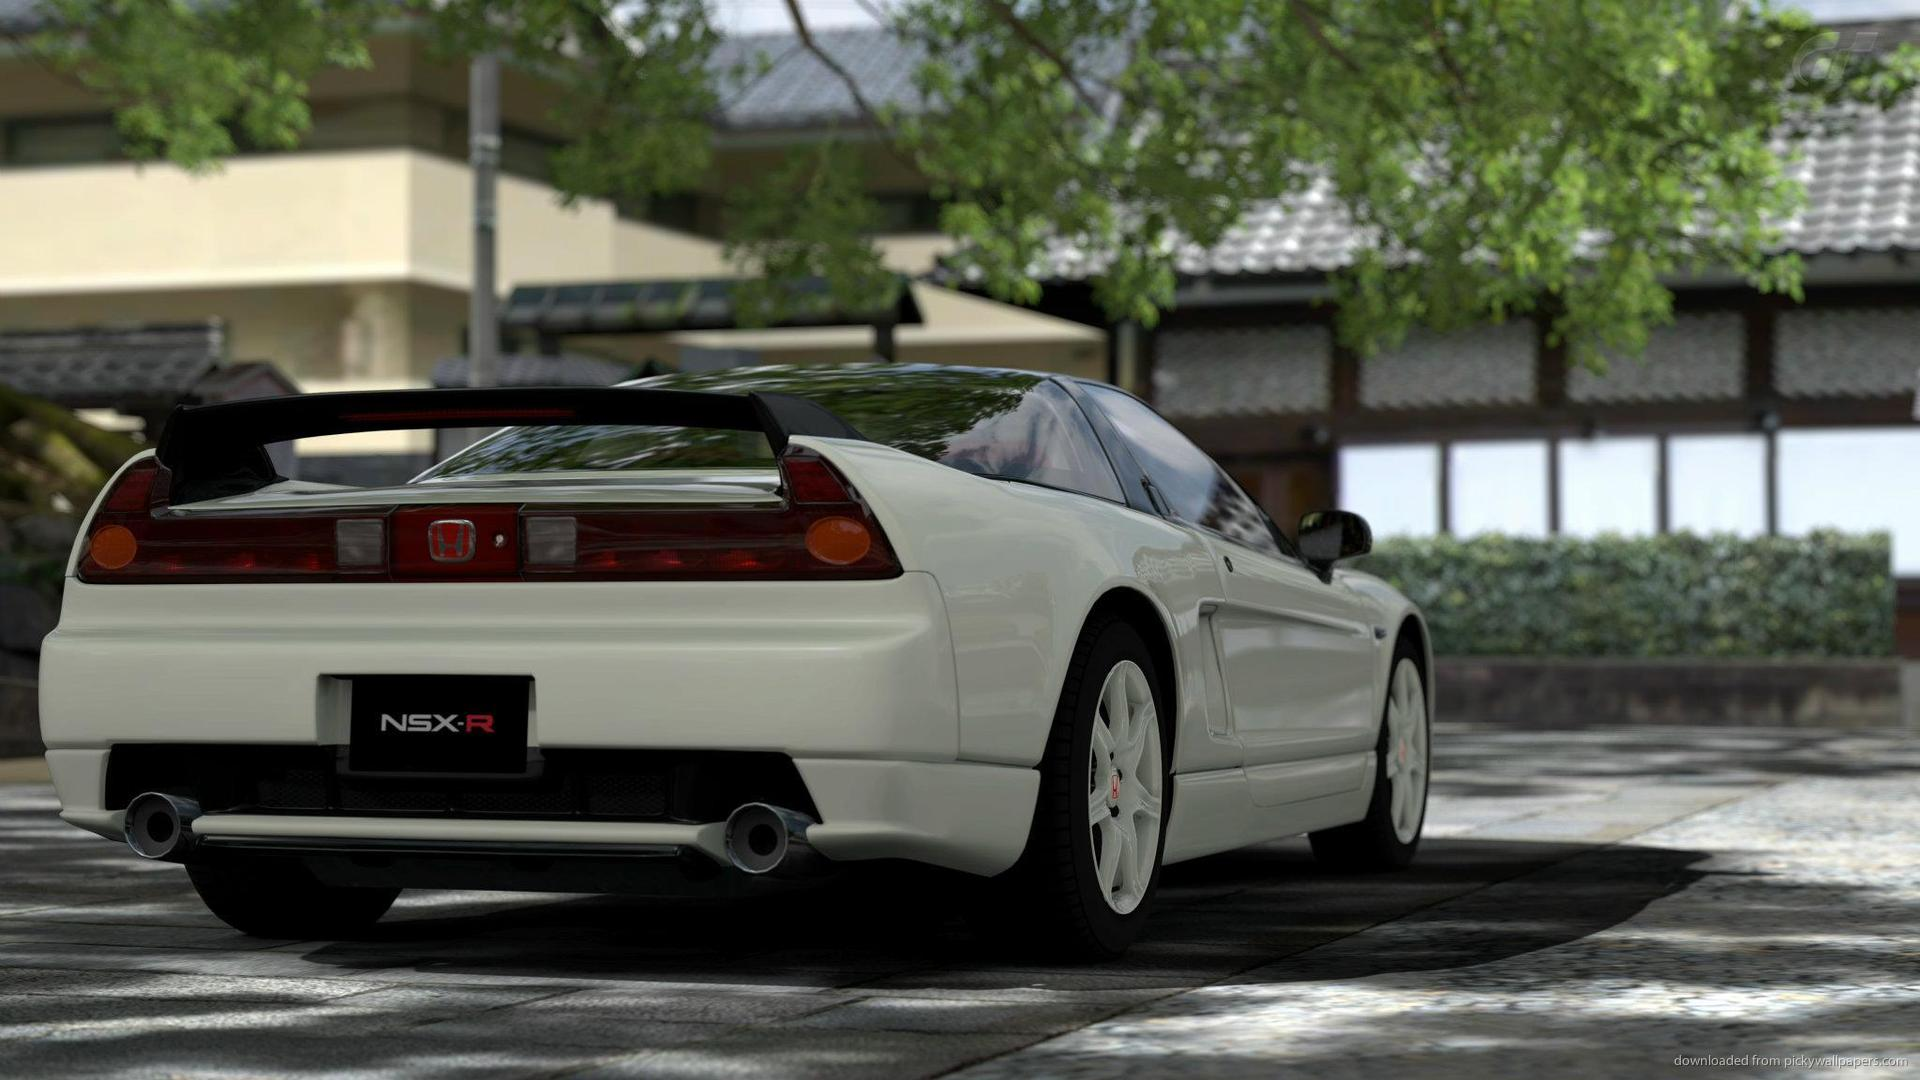 White 2002 Honda NSX Type R rear picture